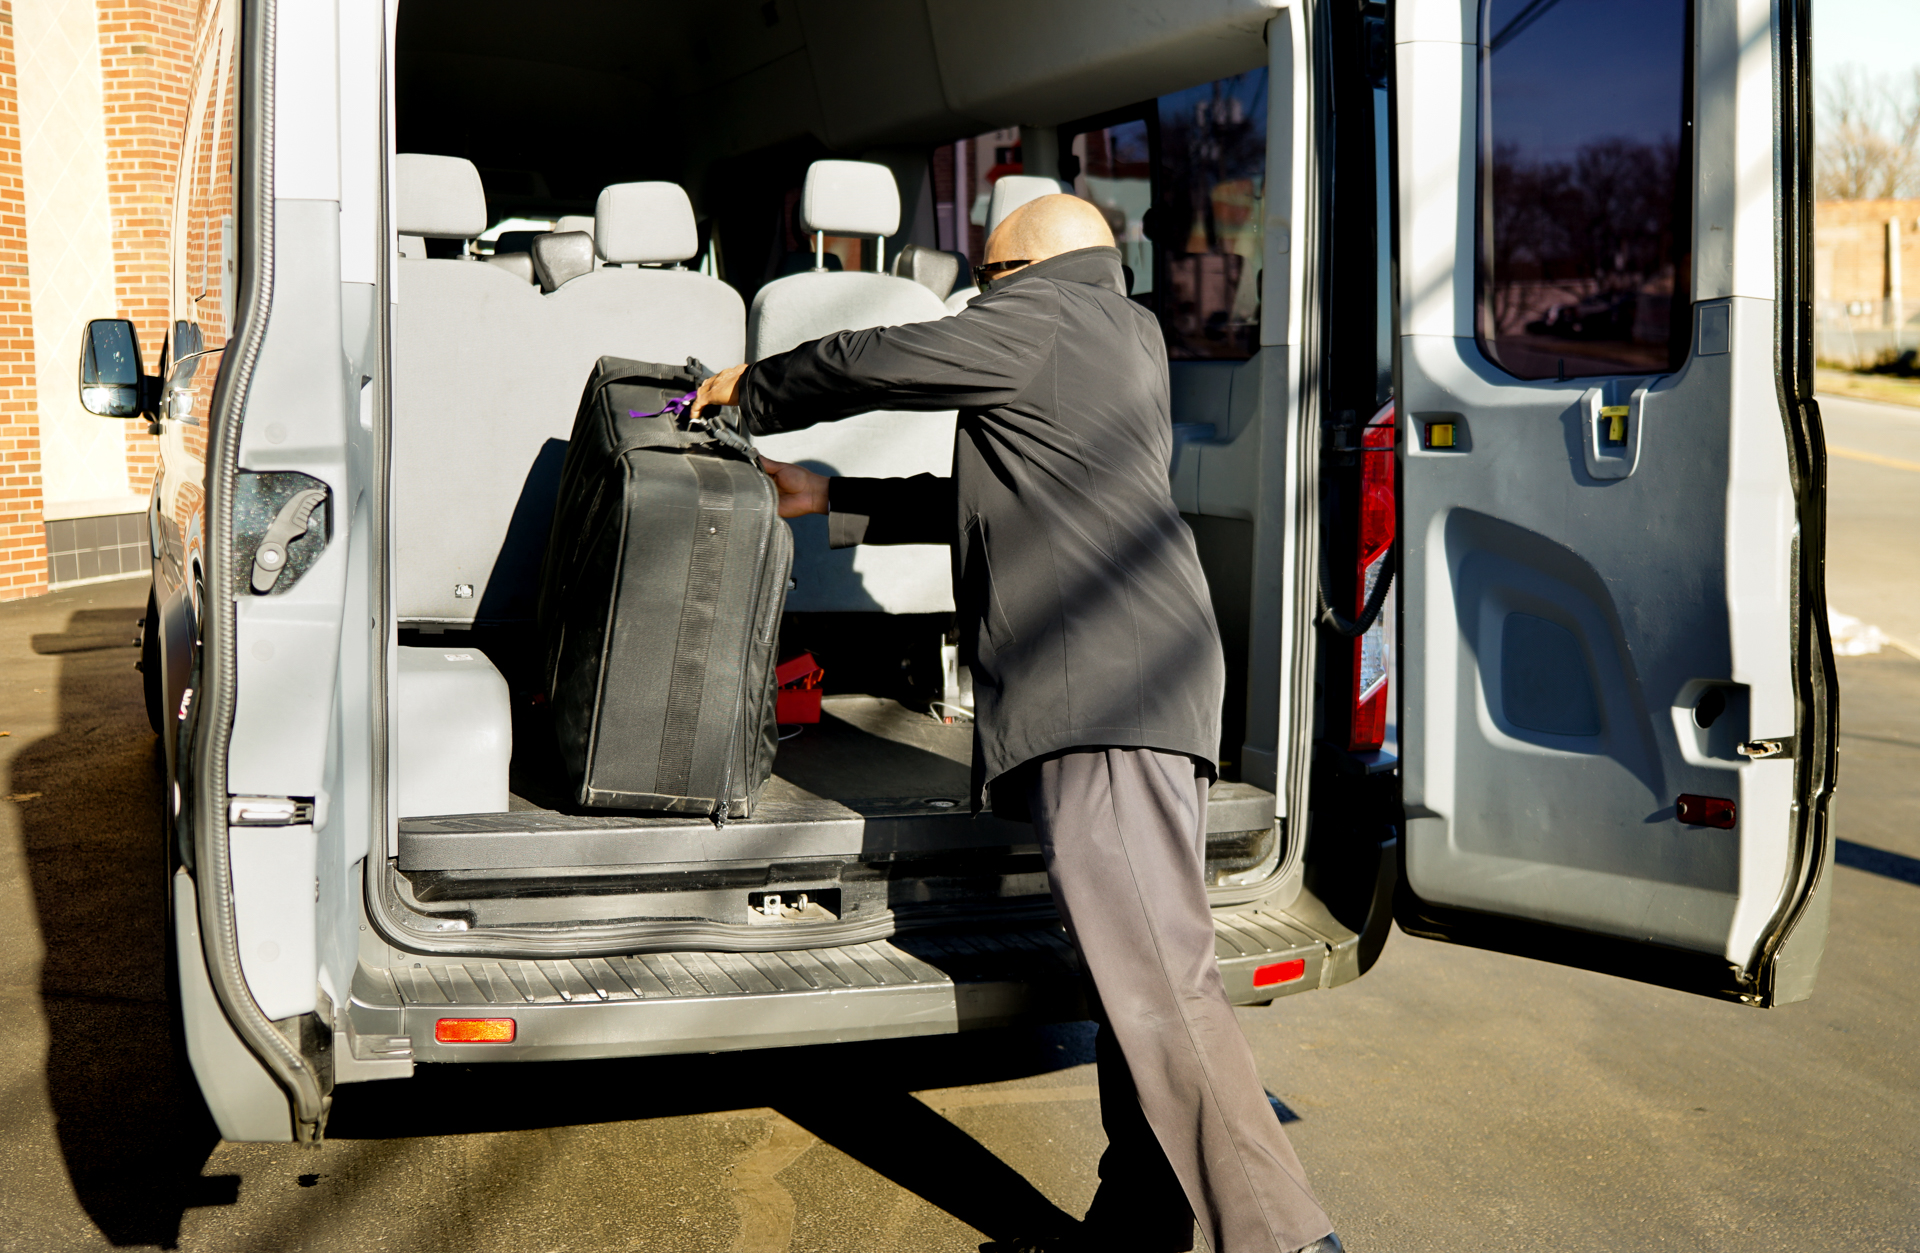 LOADING LUGGAGE INTO OUR SHUTTLE VAN